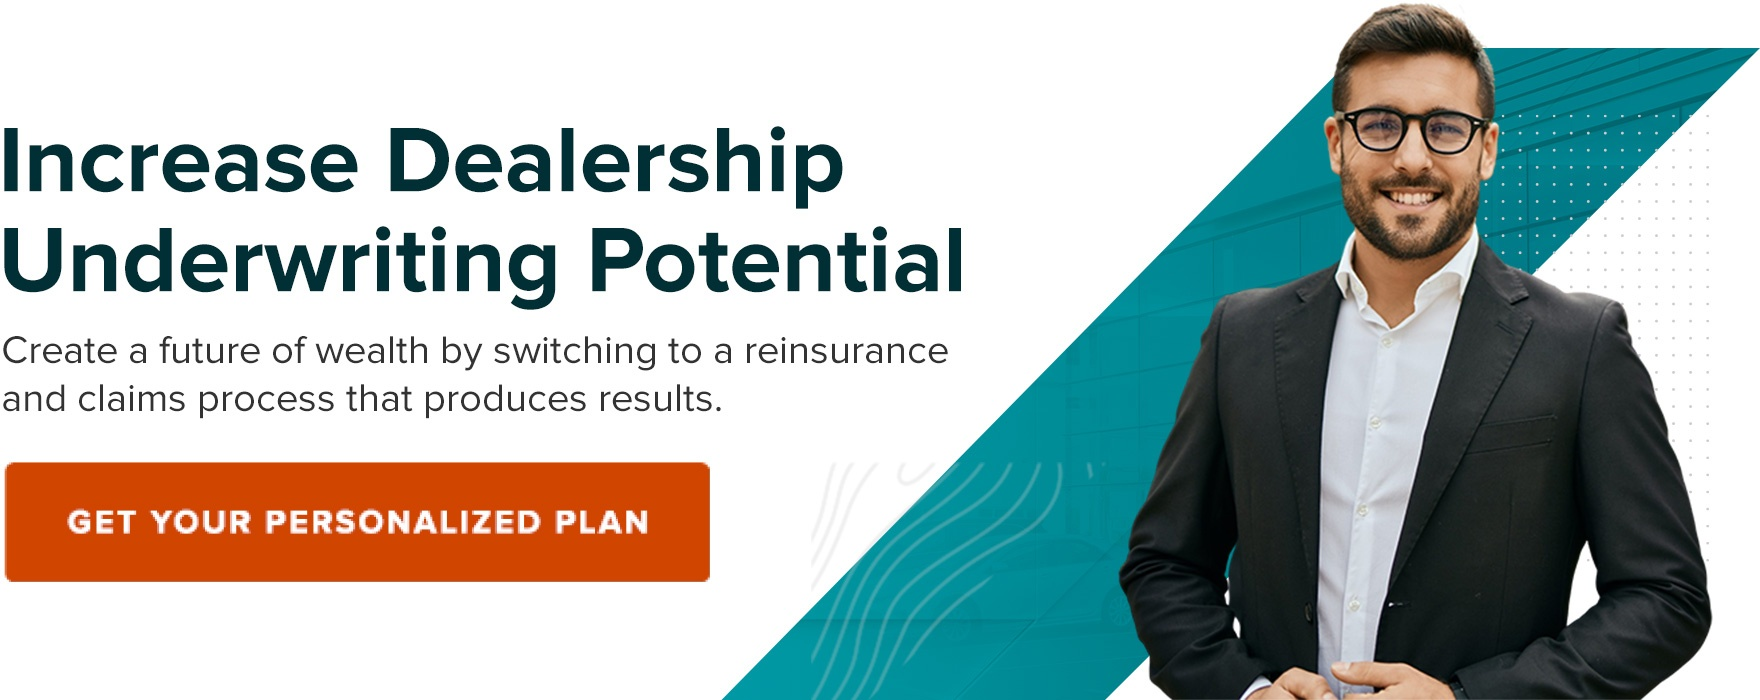 Increase dealership underwriting potential. Get your personalized plan.